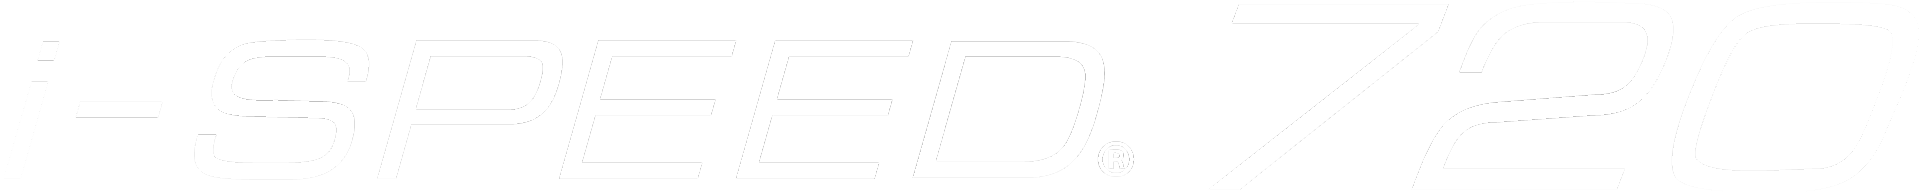 i-SPEED 720 logo.